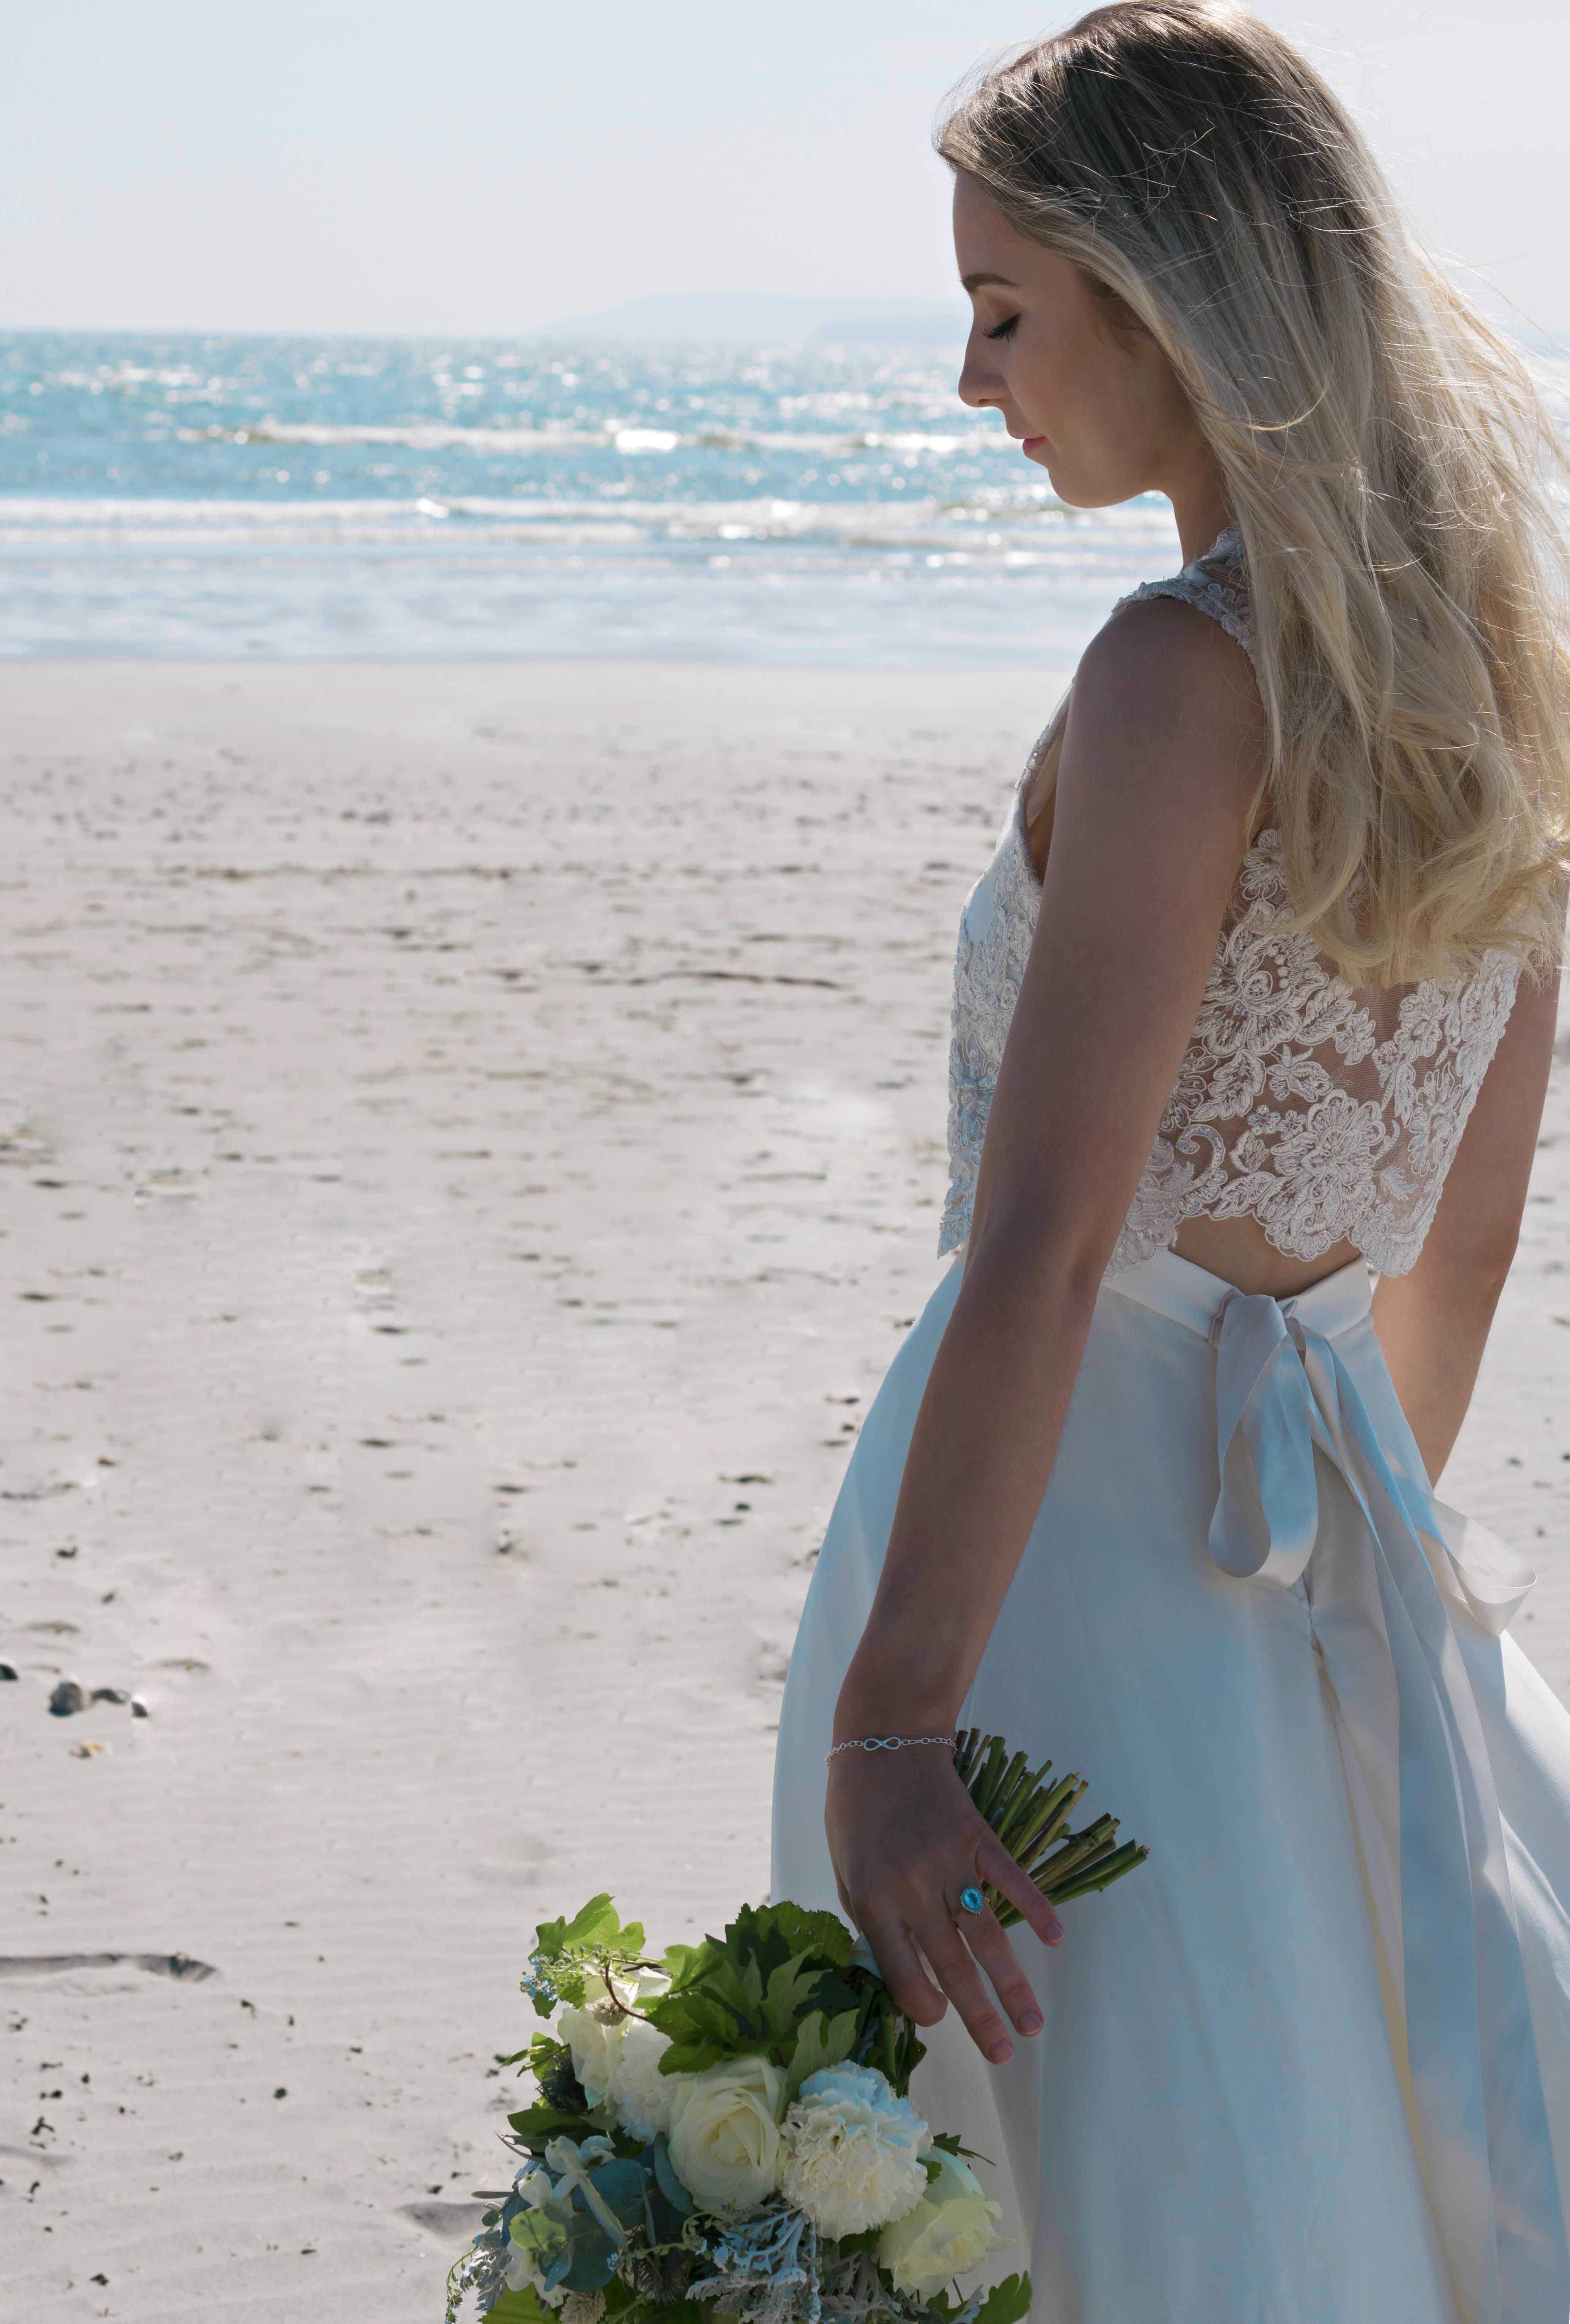 Carefree Beach Bride